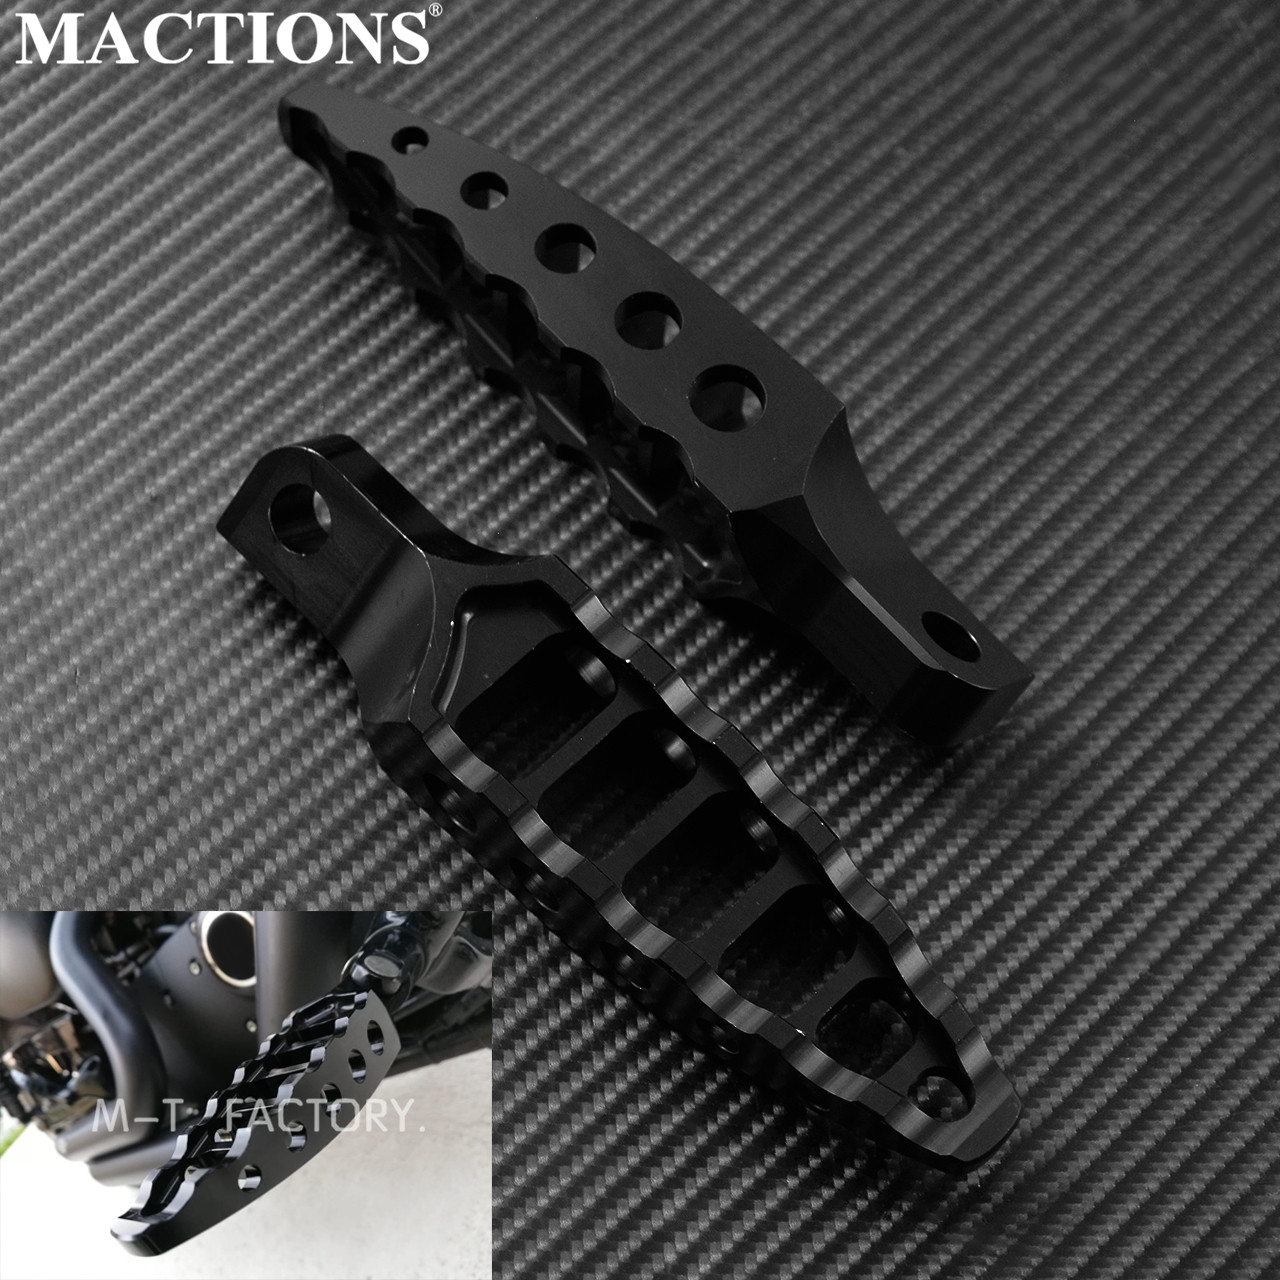 Wide Foot Pegs MX Style 360 Roating CNC Fat Footrest Chopper Bobber For Dyna Sportster Iron 883 Fatboy Wide Glide Low Rider FXDL Black